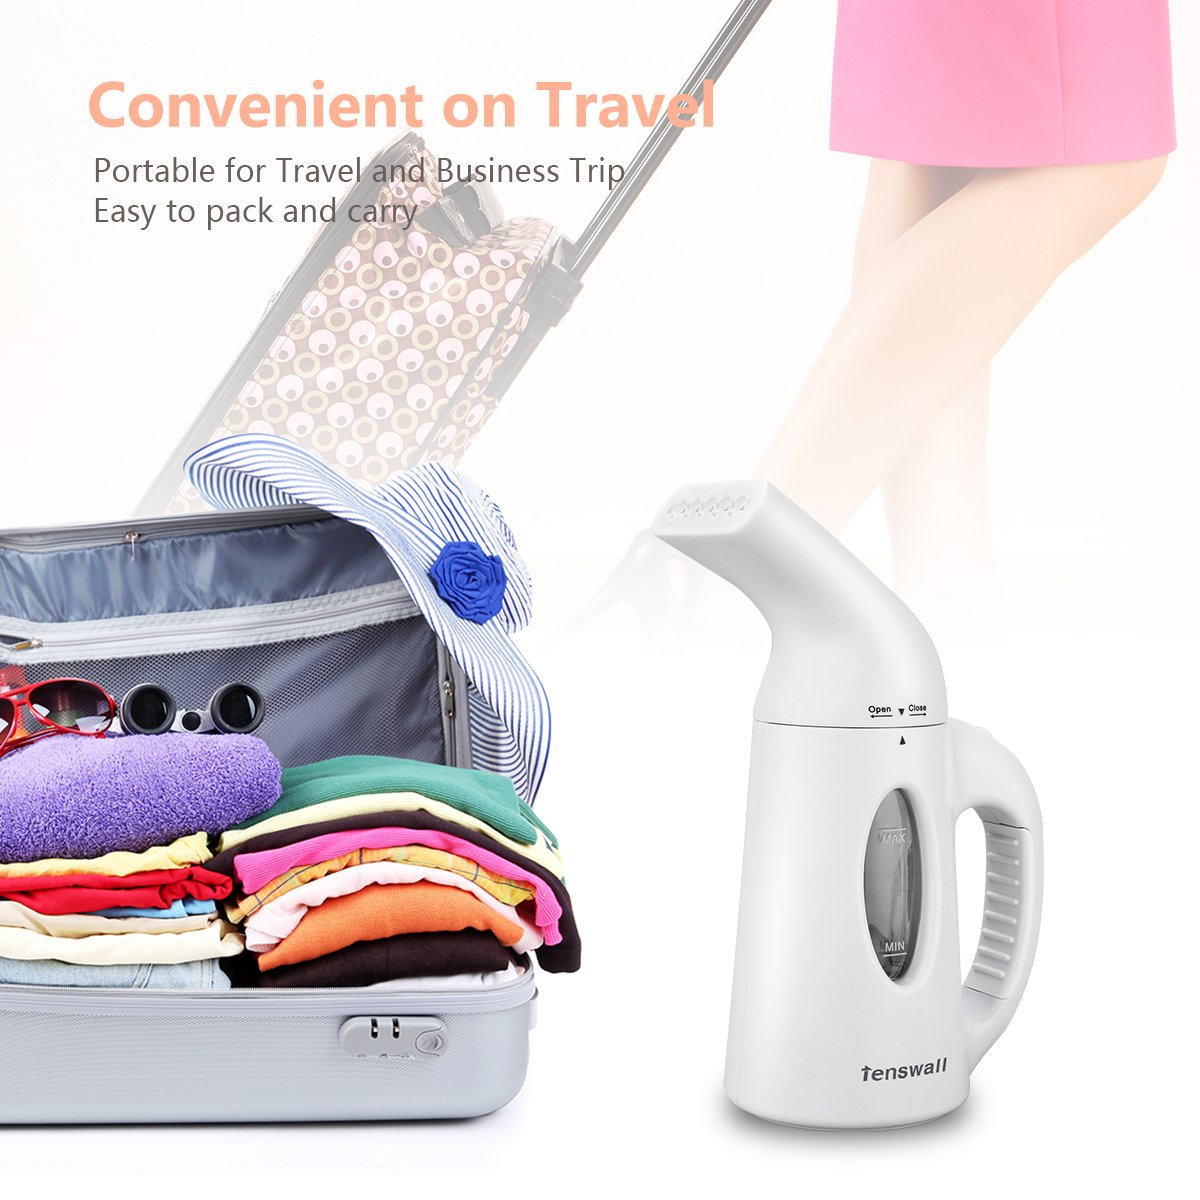 Tenswall Portable Garment Steamer, Handheld Fabric Steamer For Clothes - 2 Min. Heat-up Premium Clothes Steam Cleaner, 120ml Capacity Compact Travel Garment Clothes Steamer Perfect For Home & Travel